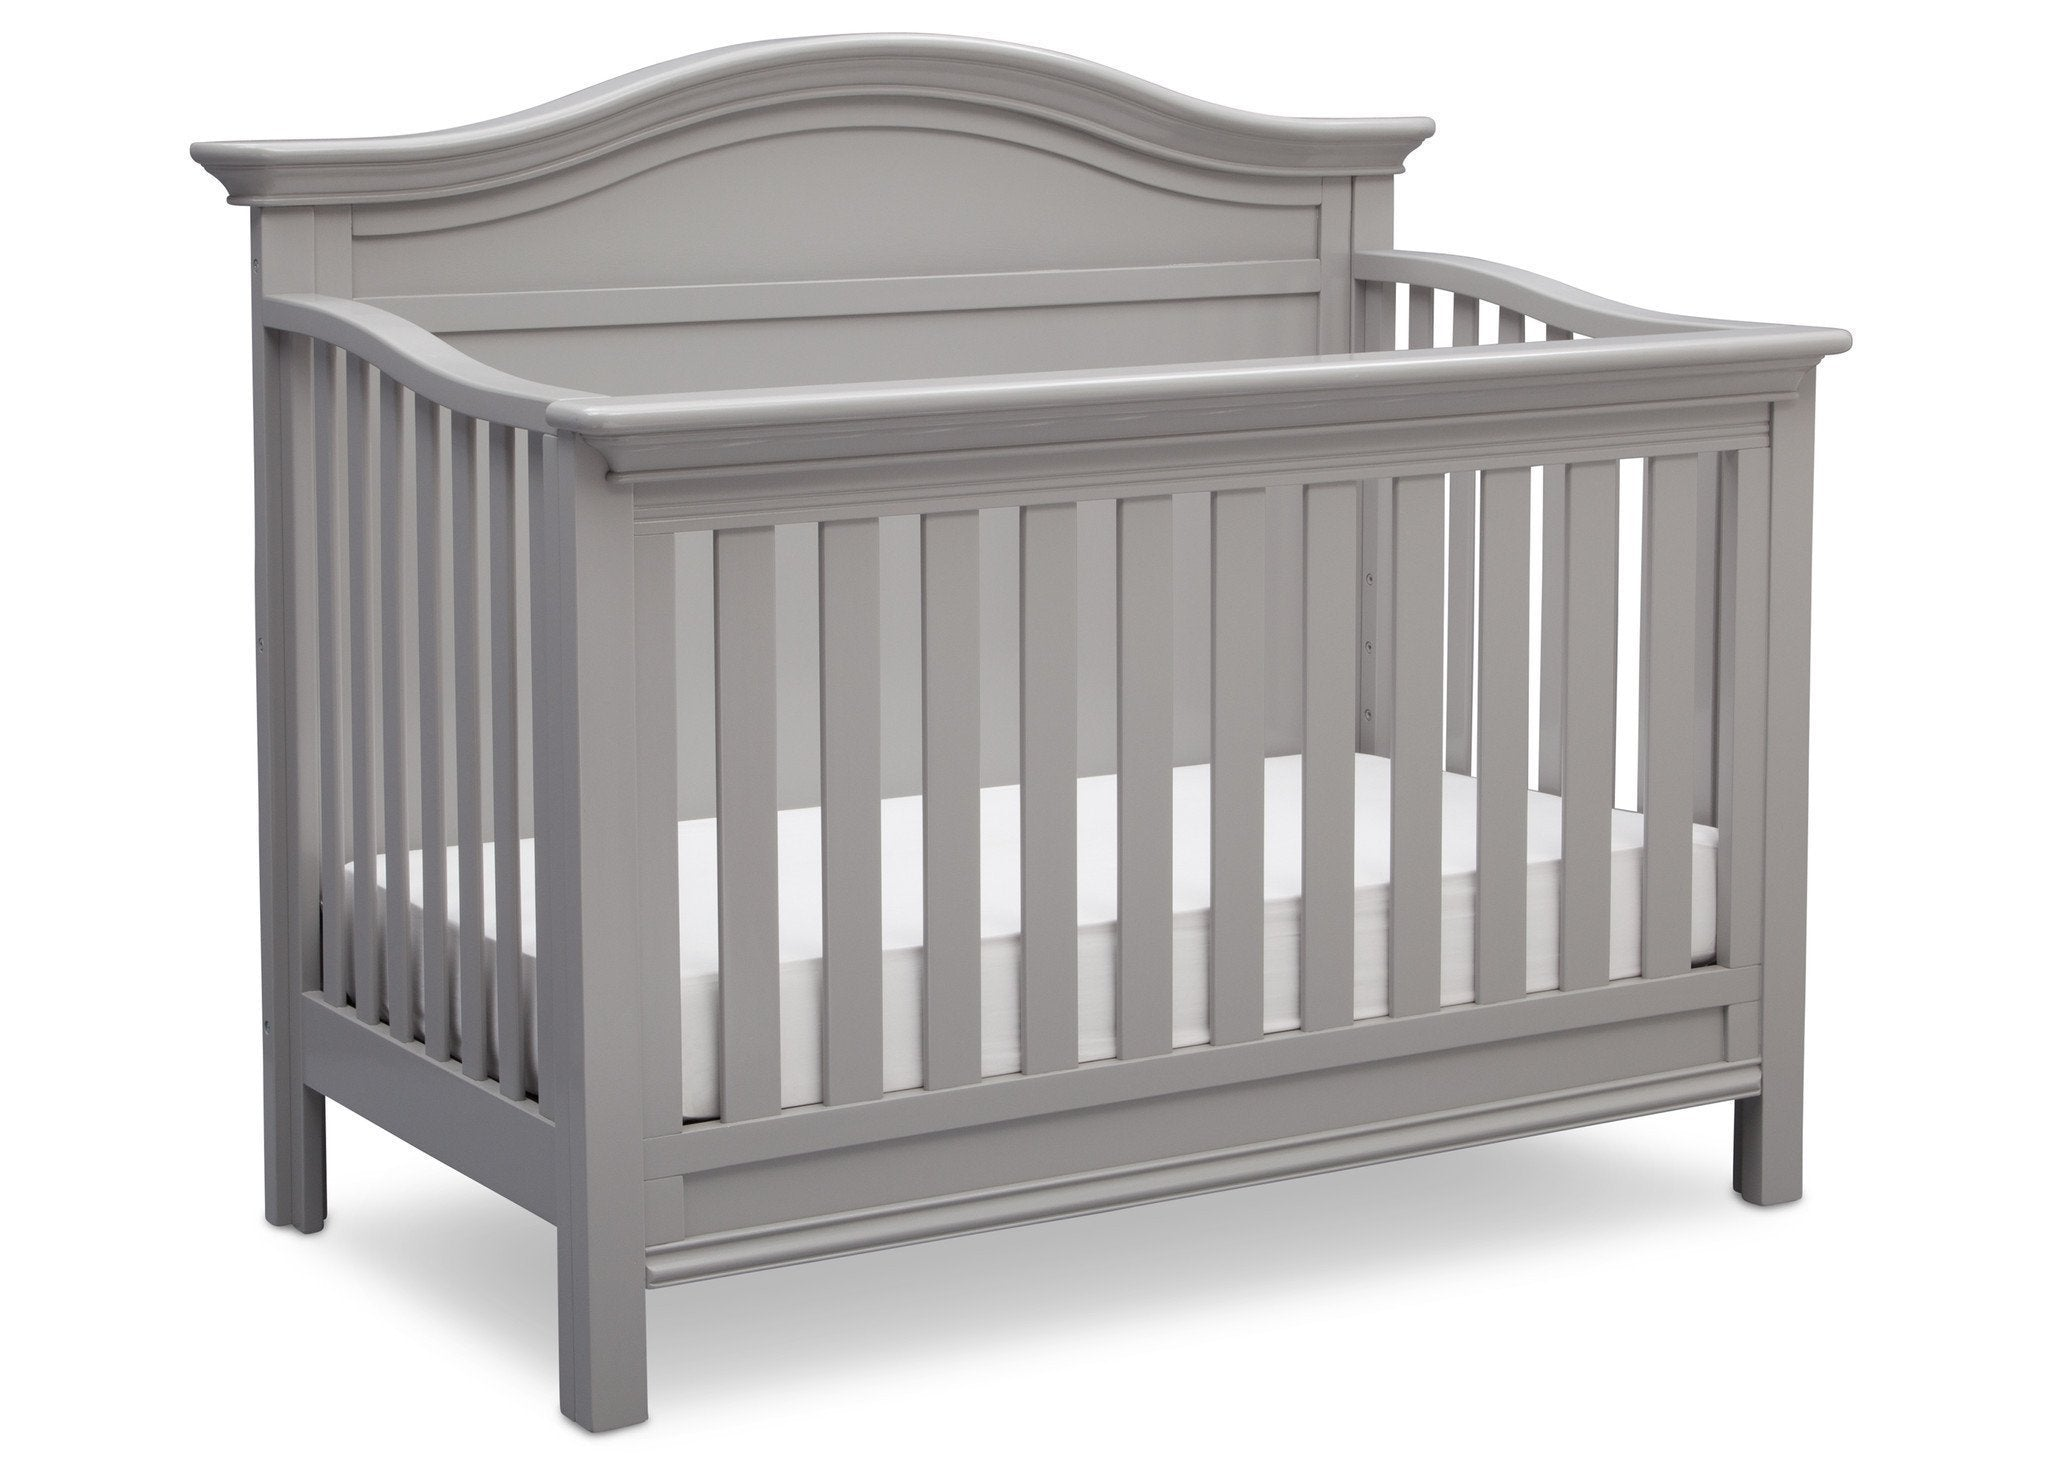 Serta Grey (026) Bethpage 4-in-1 Crib, Side View with Crib Conversion a4a